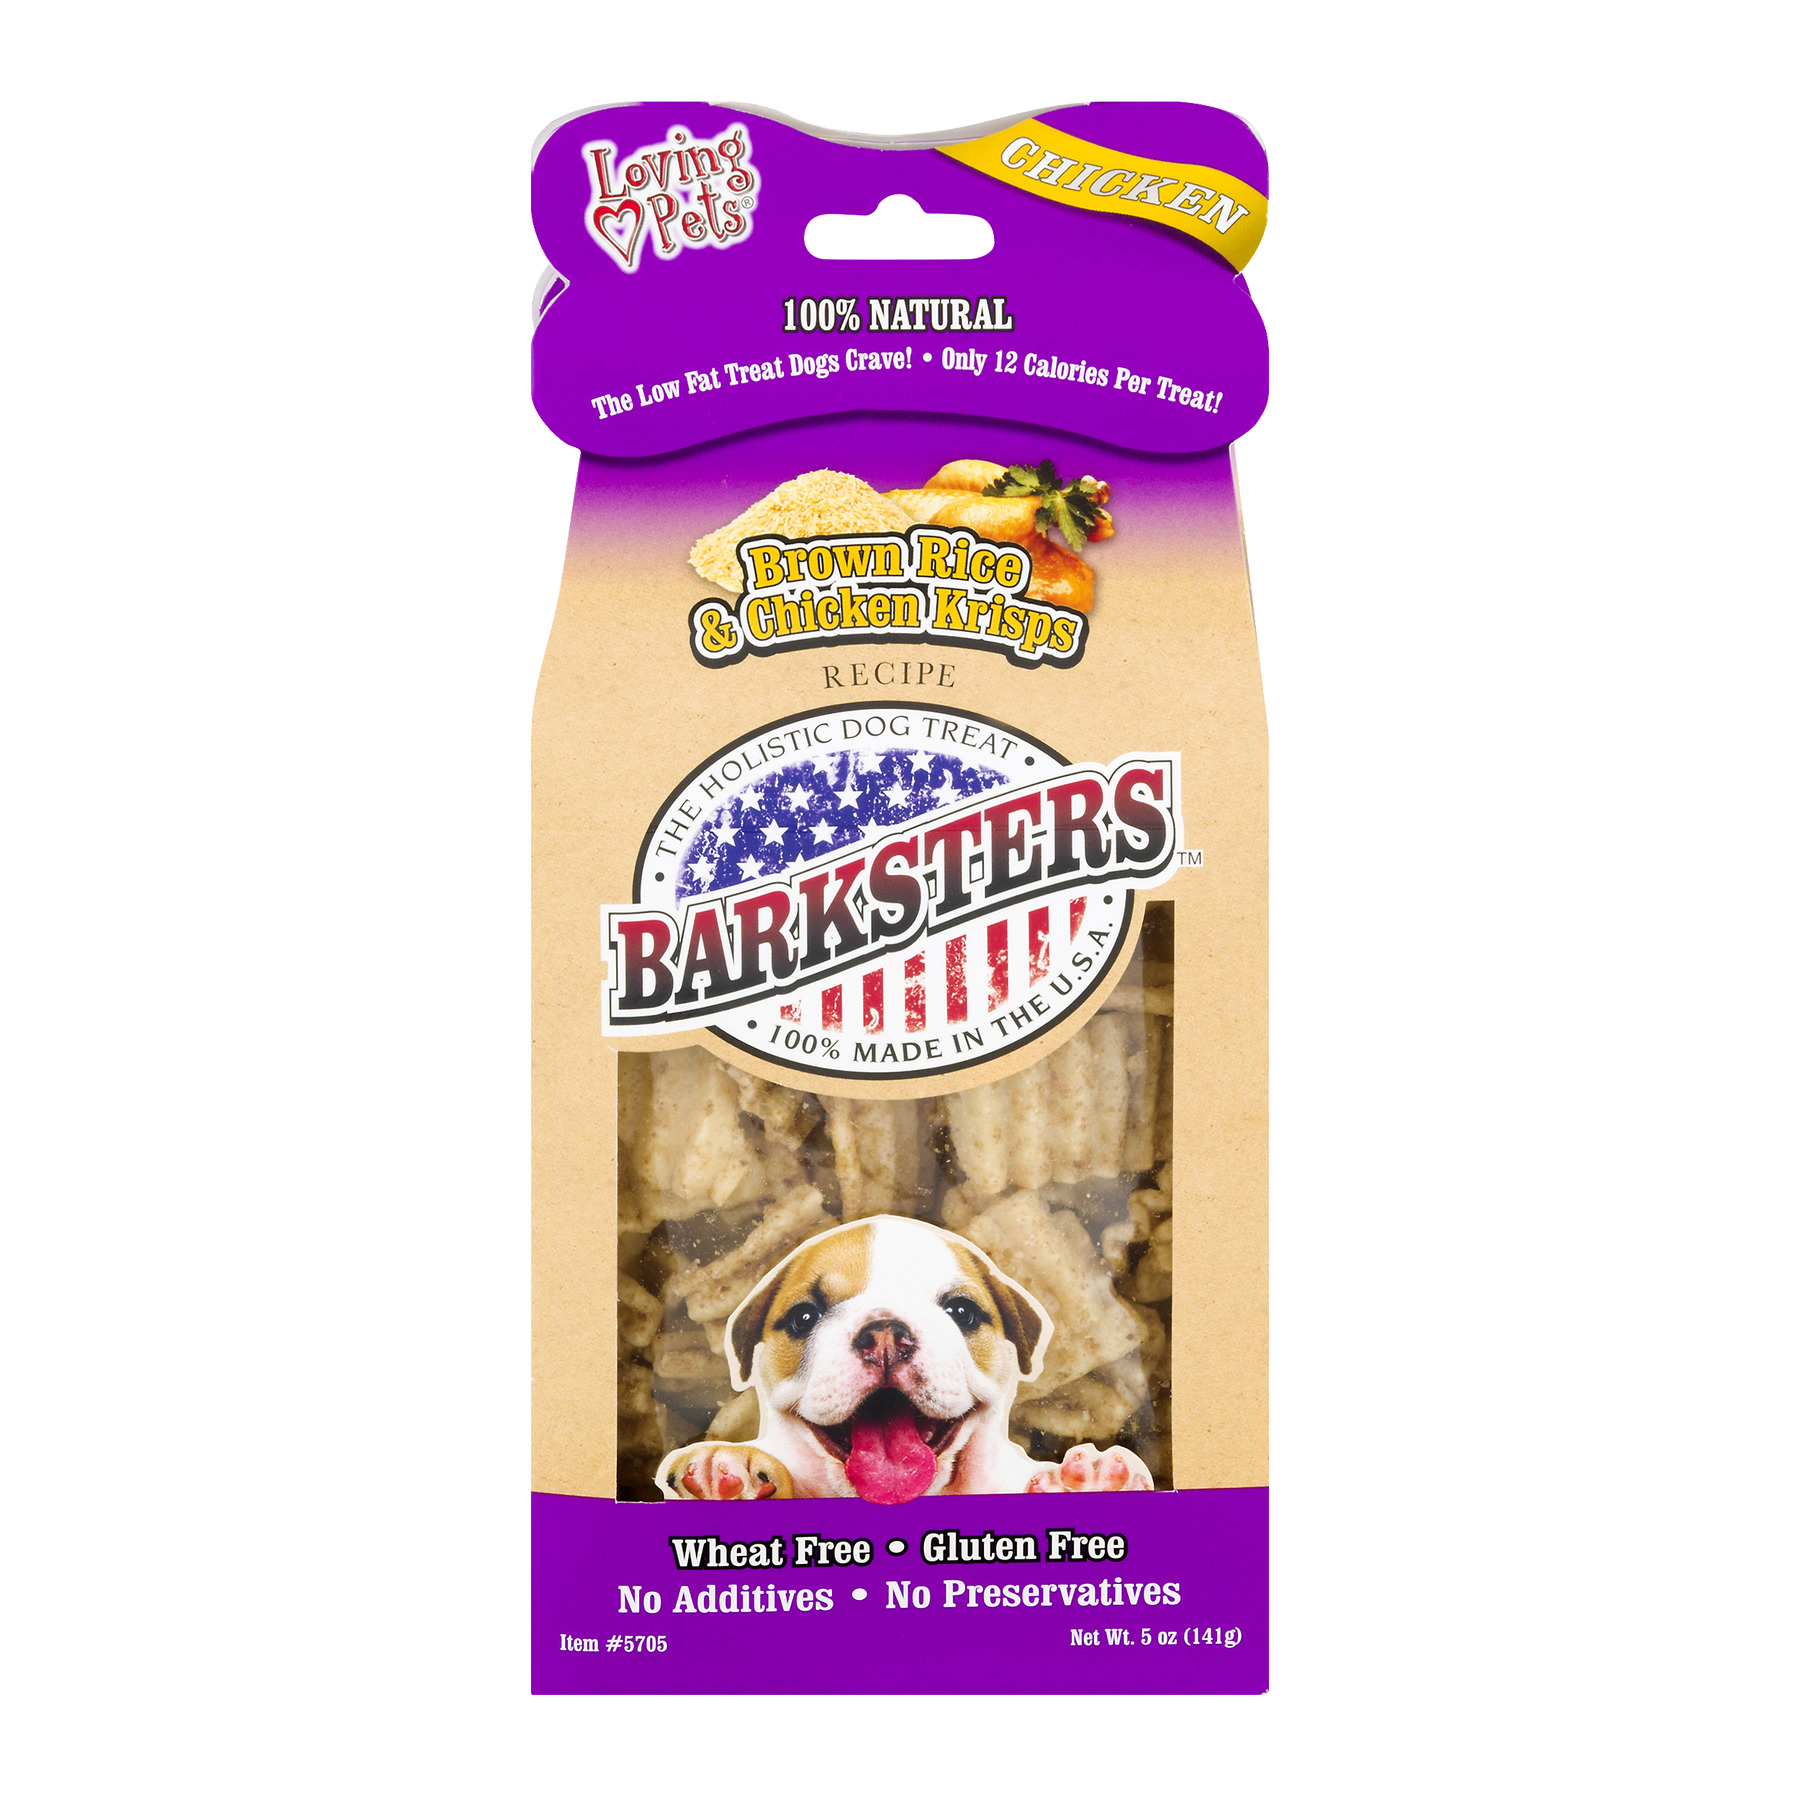 Loving Pets Barksters Dog Treats Brown Rice & Chicken Krisps, 5.0 OZ